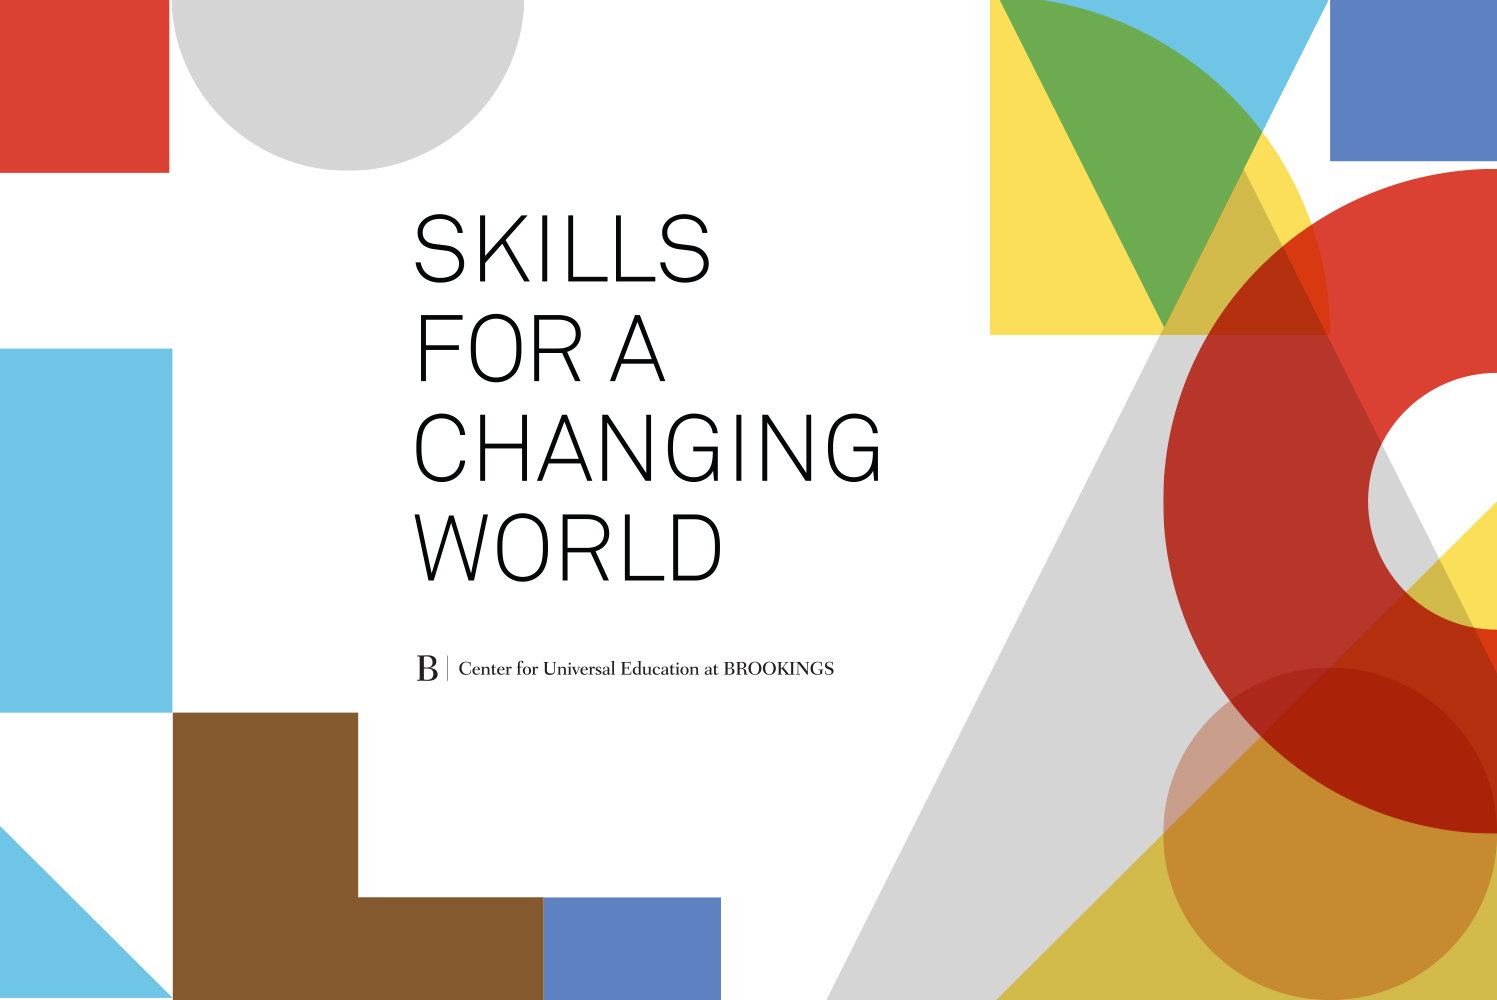 Cover image: Skills for a Changing World